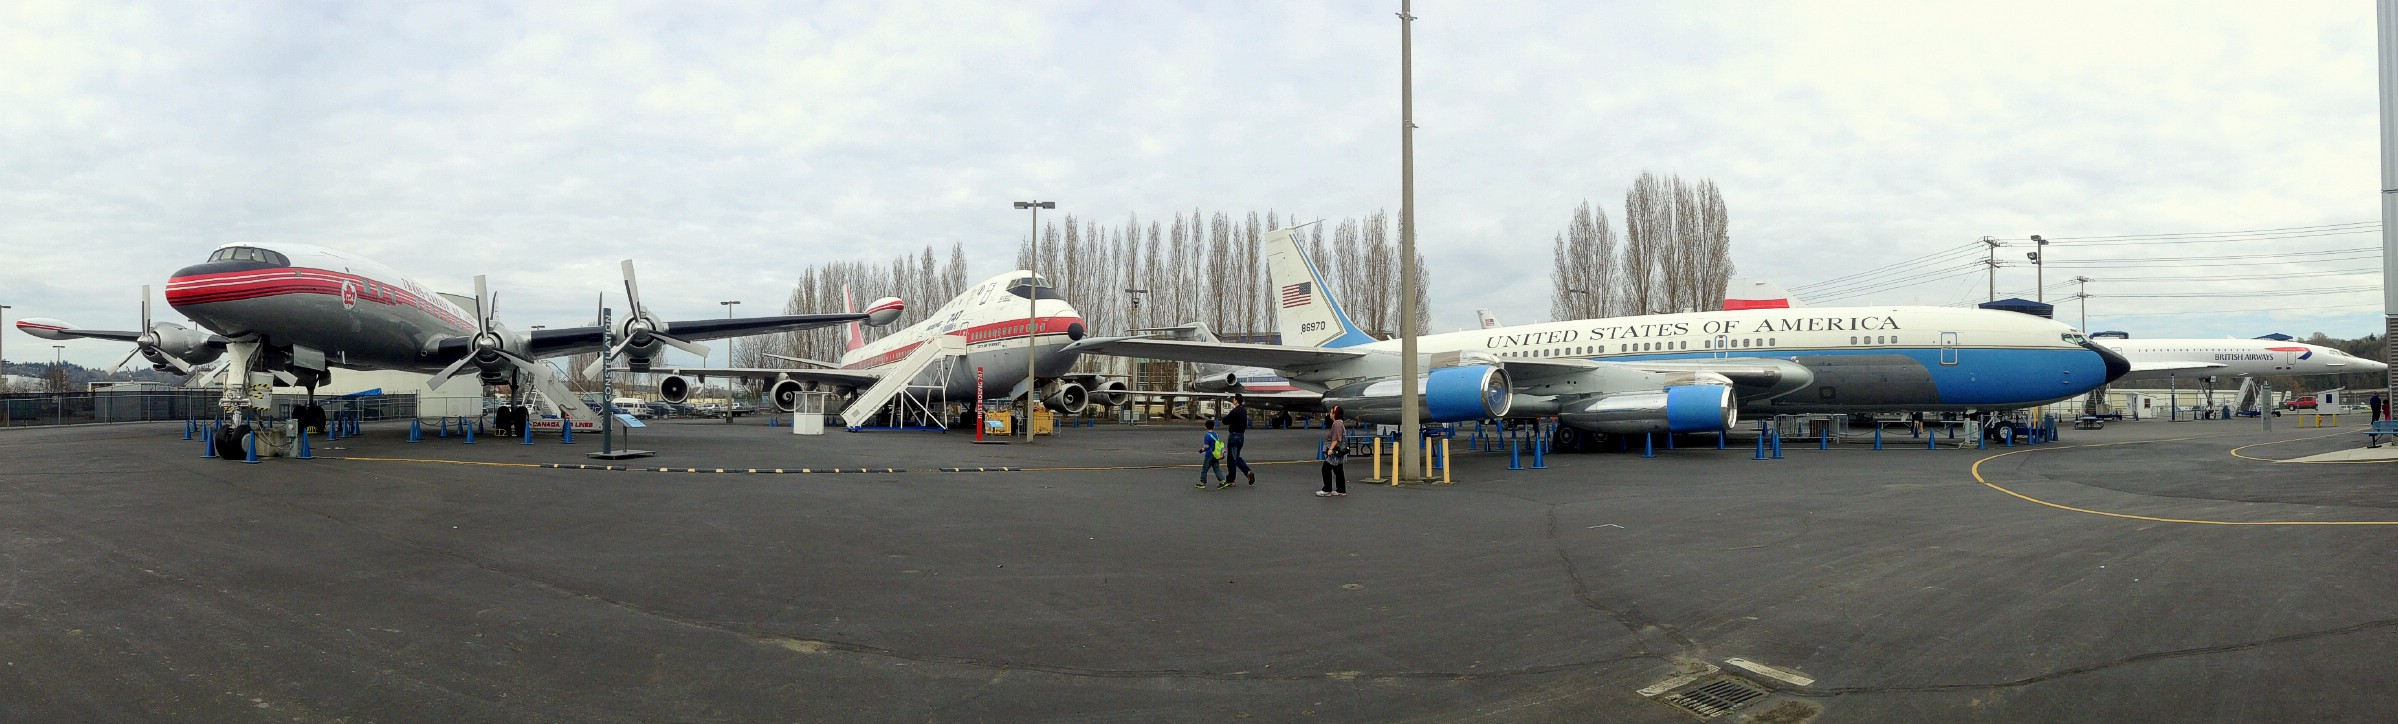 A panorama of the flight yard at The Museum of Flight, Seattle, Washington, USA. March 26th 2013.